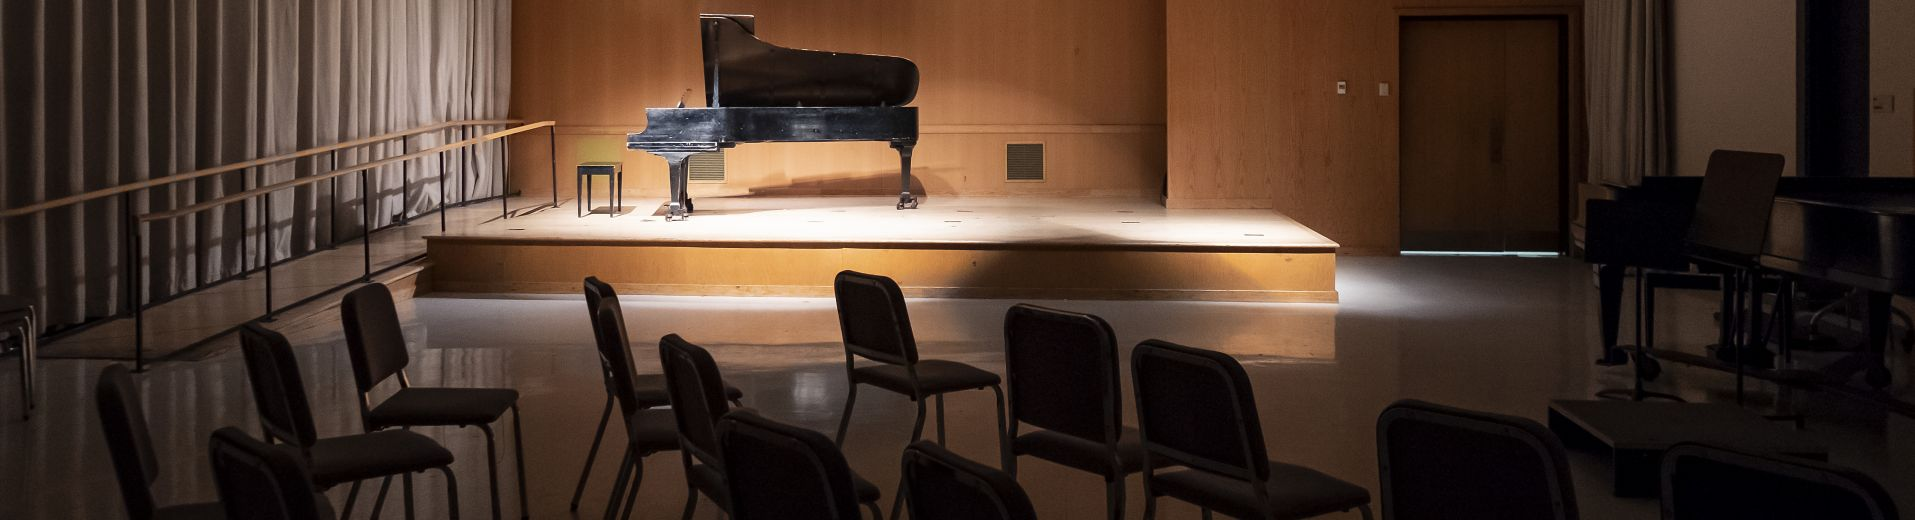 Stage with grand piano on it, audience lights dimmed and spotlight on piano